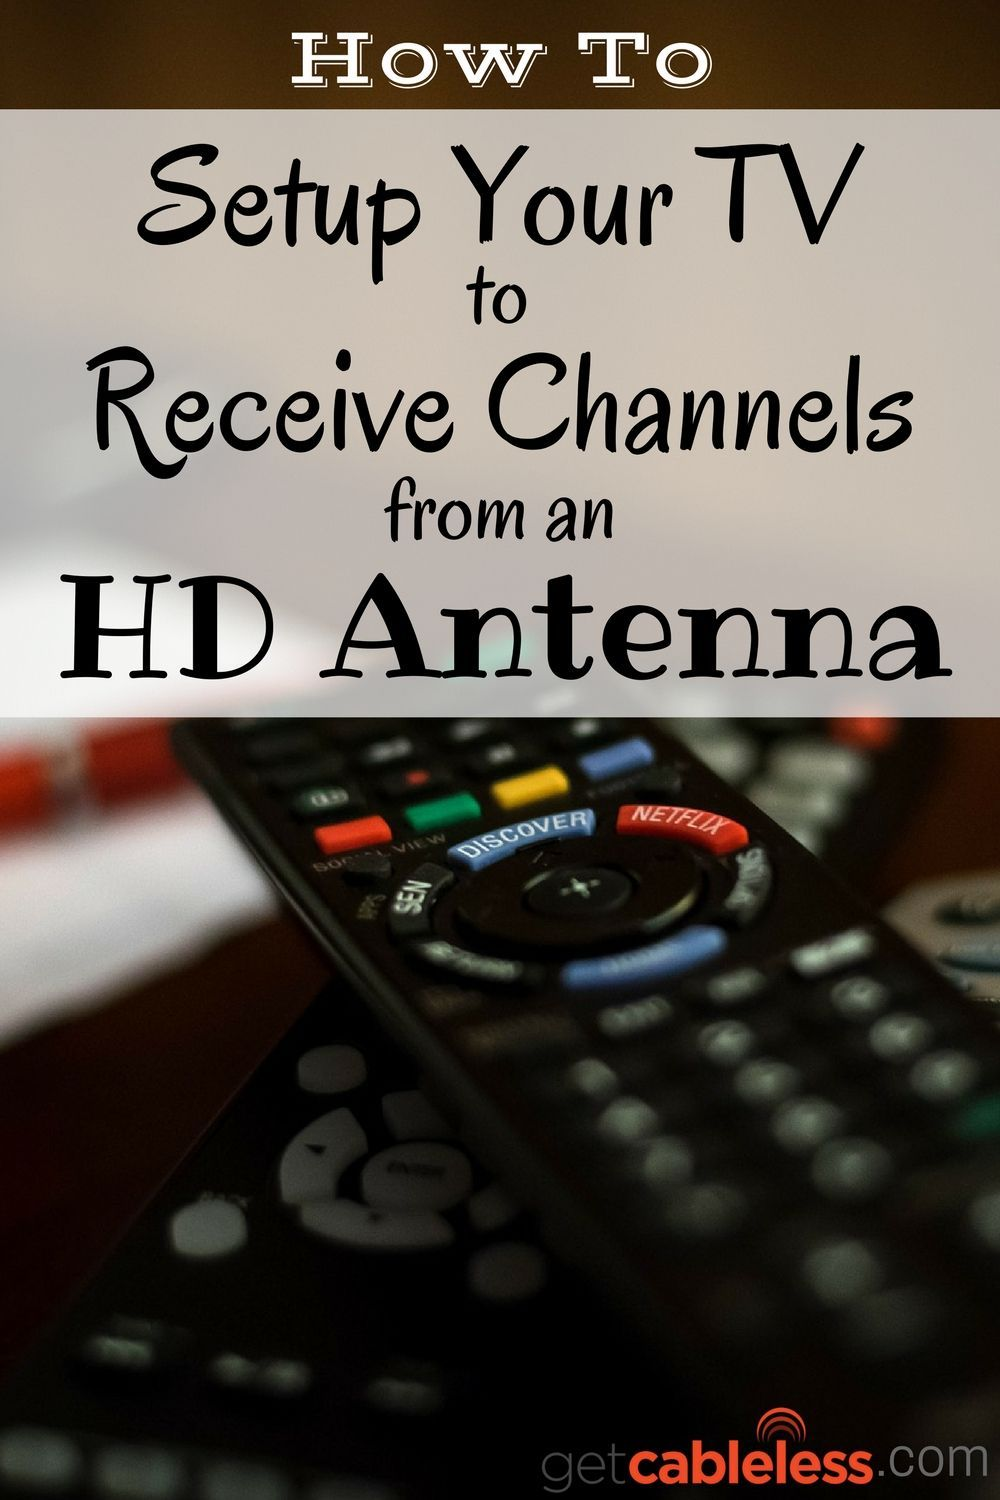 With these simple steps, I was able to setup all the TV's